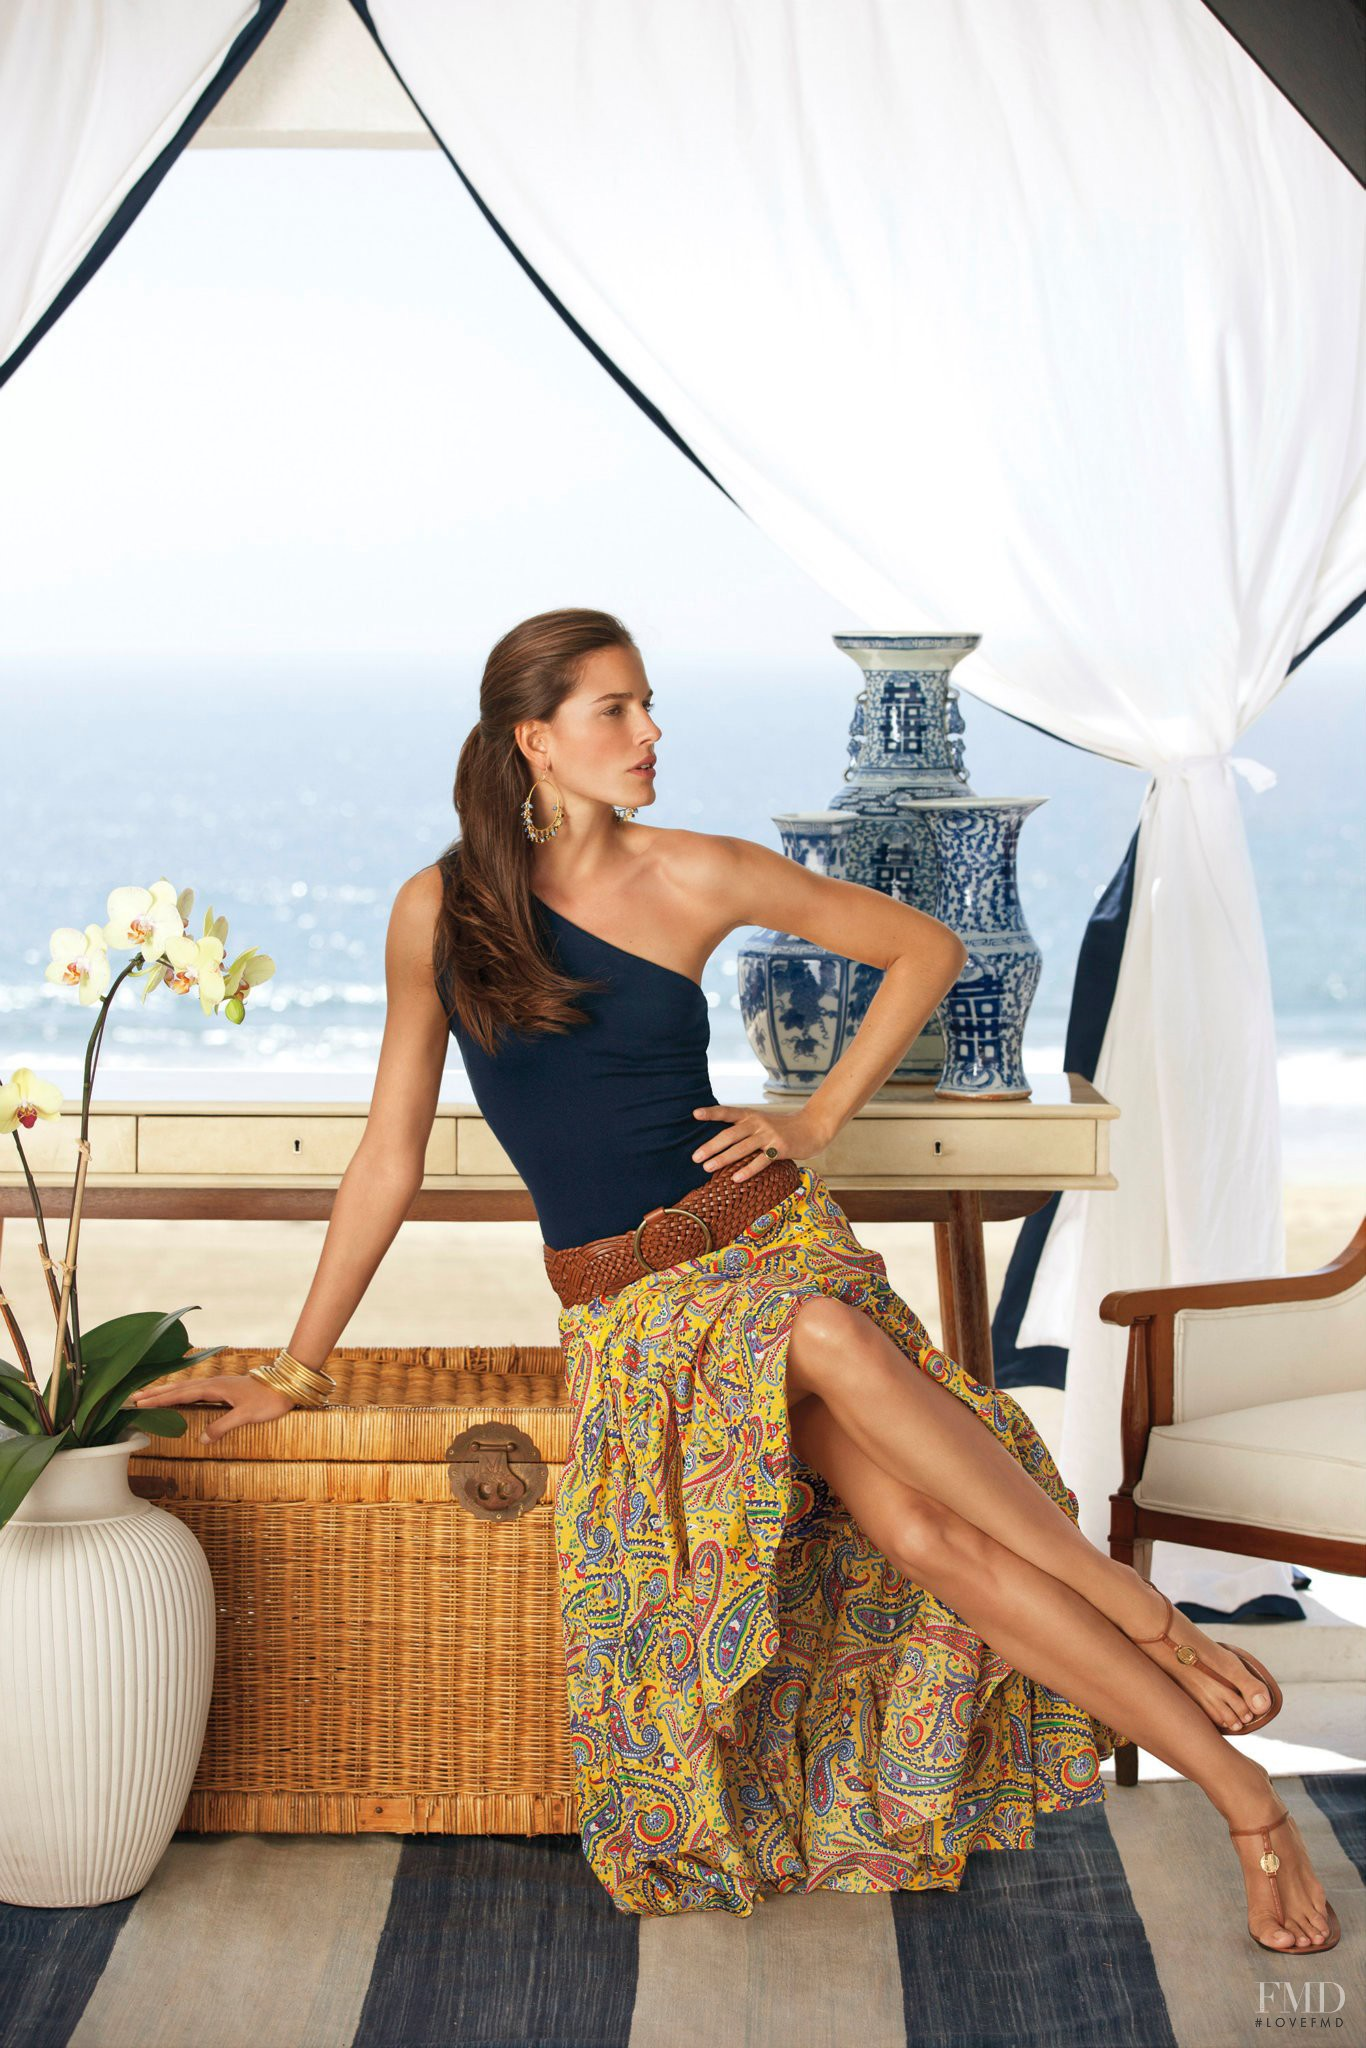 Chiara Baschetti featured in the Lauren by Ralph Lauren catalogue for Spring 2012. View this photograph in high resolution